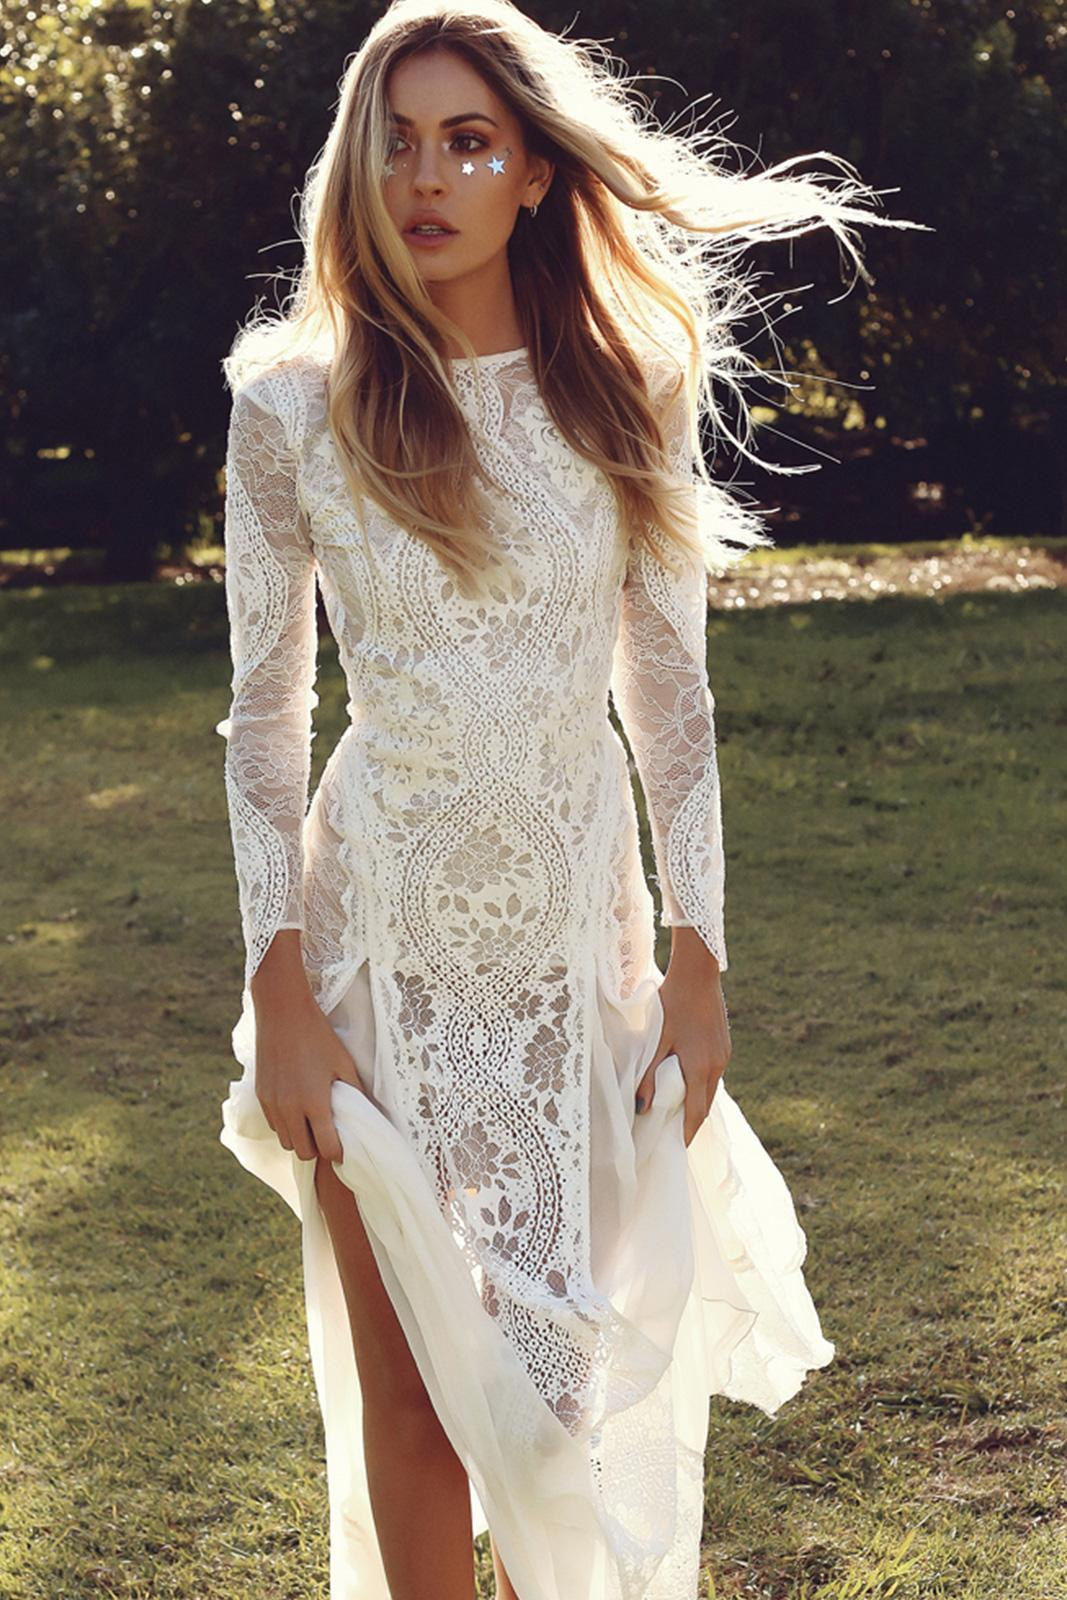 These are the 5 most popular wedding dresses on pinterest for Pinterest dresses for wedding